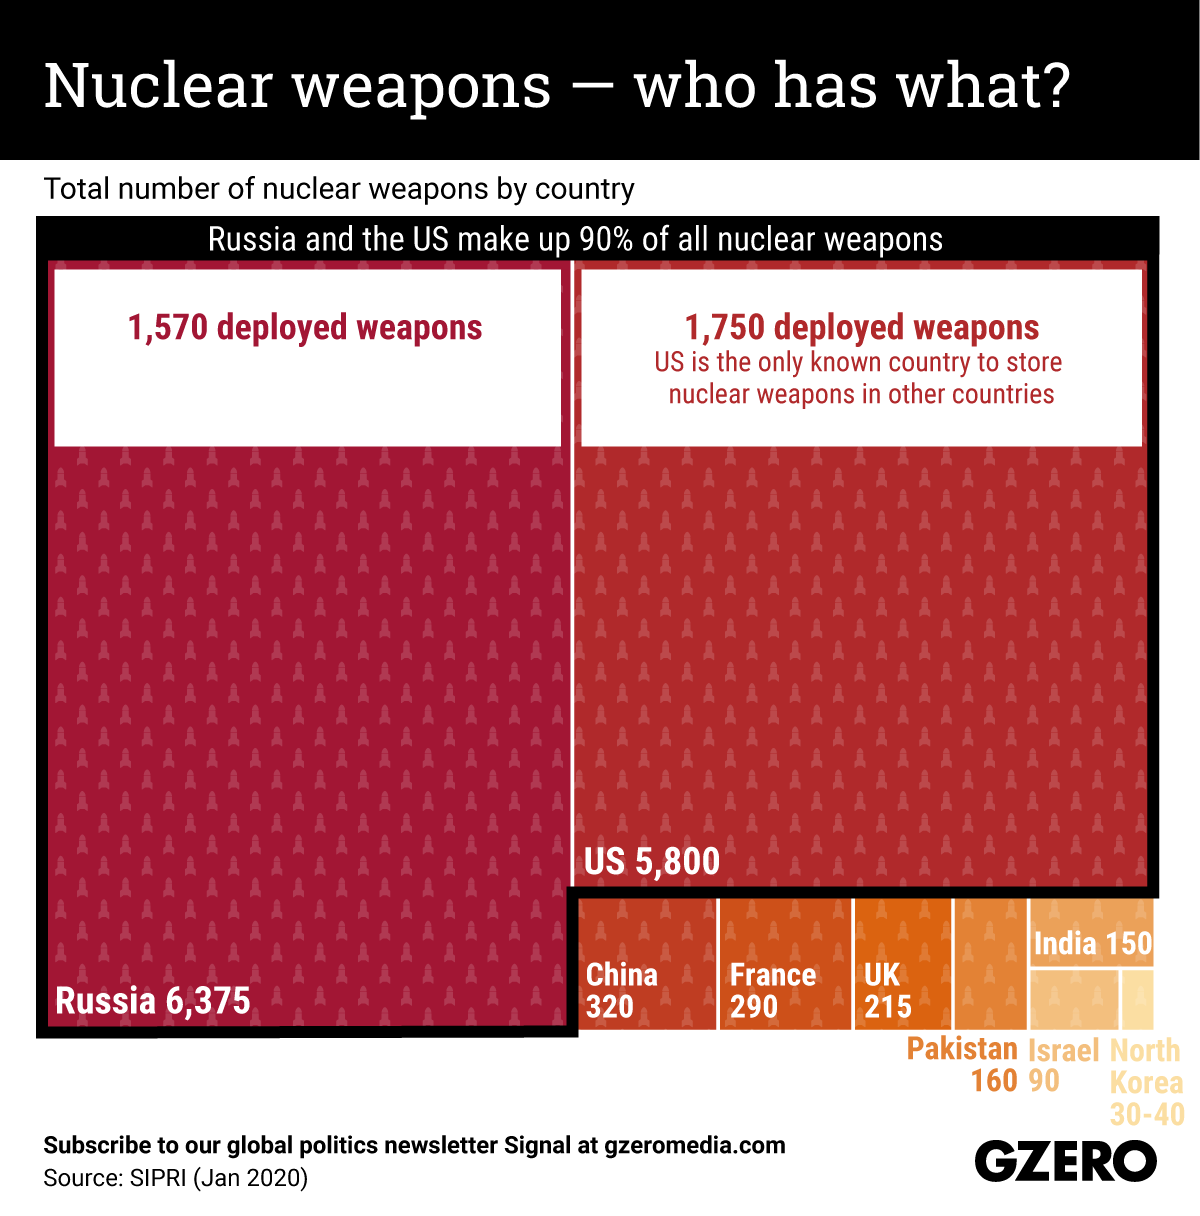 The Graphic Truth: Nuclear weapons — who has what?